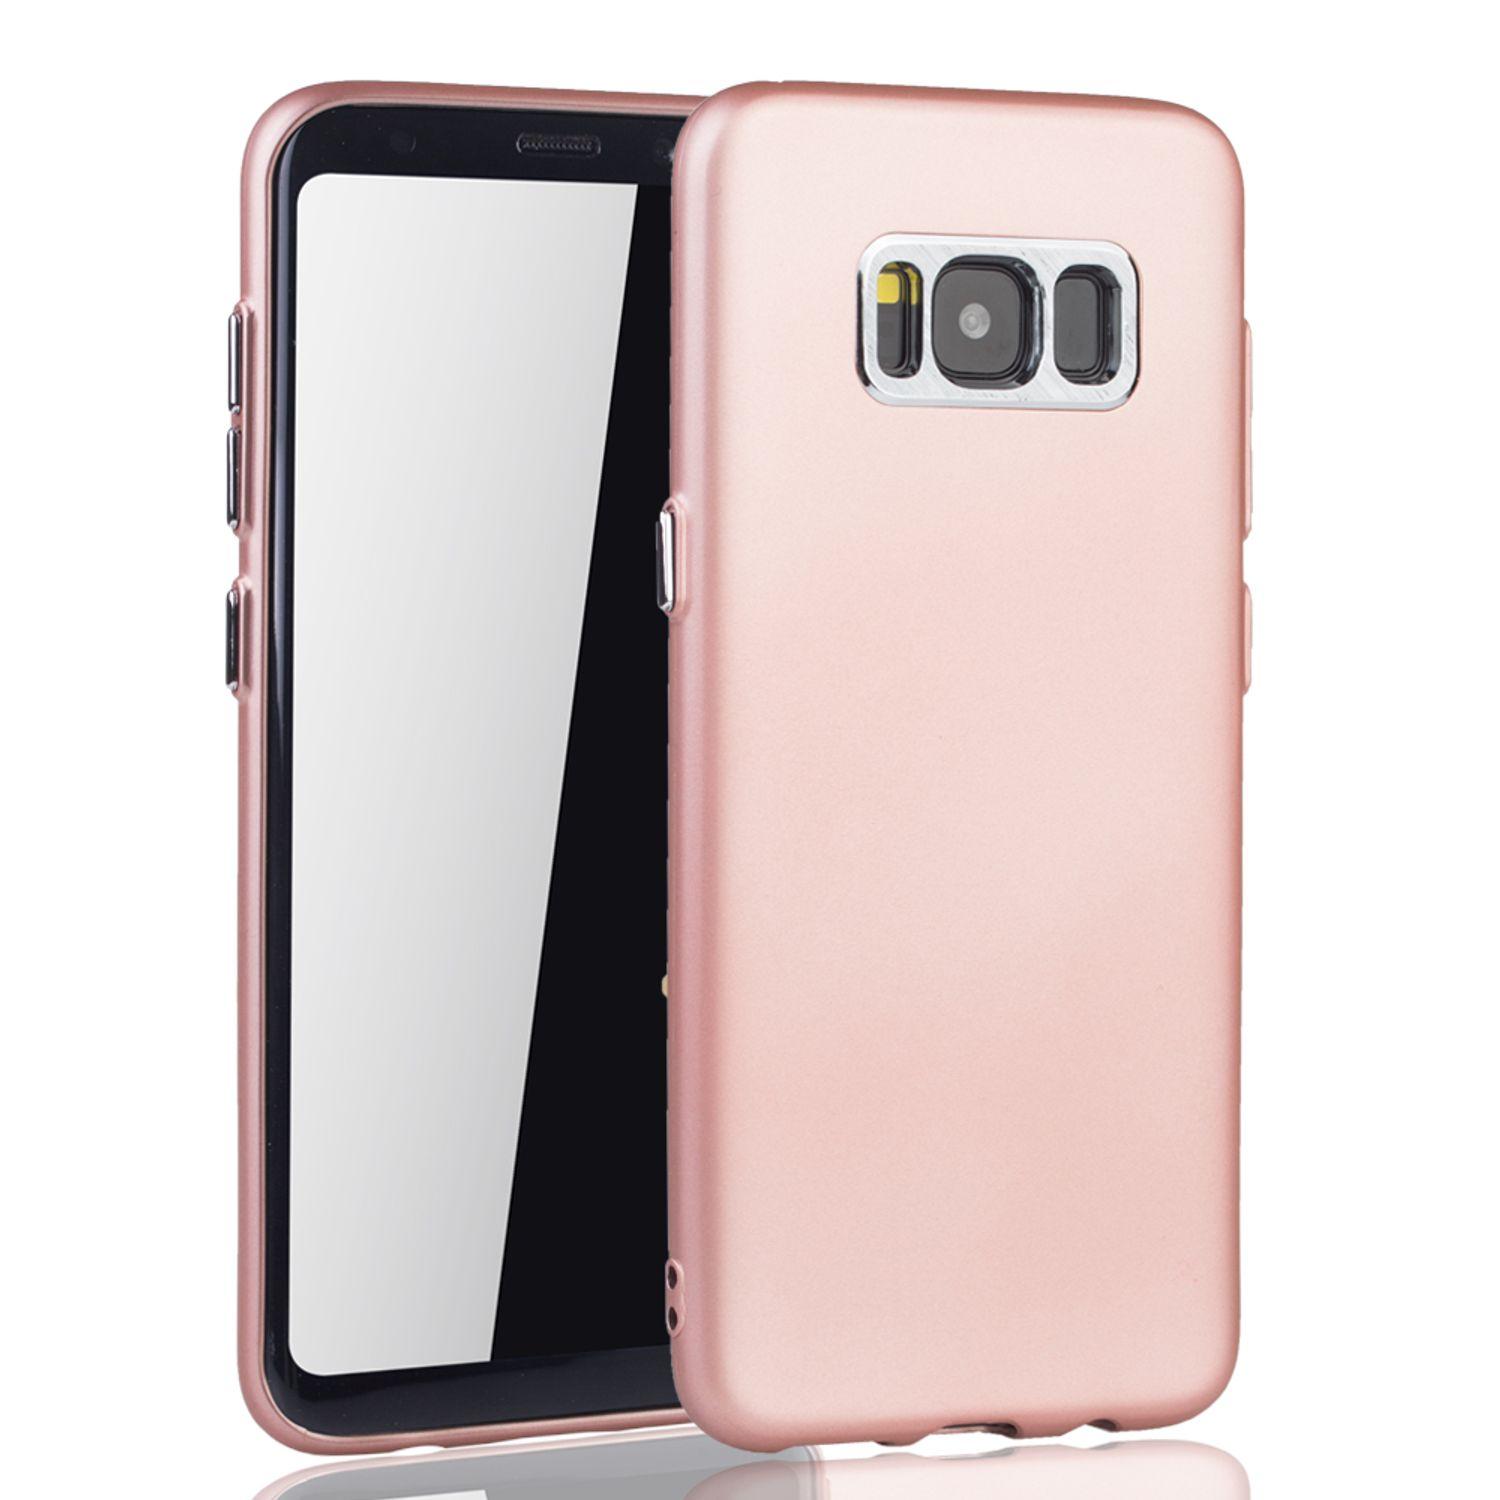 samsung galaxy s8 plus h lle handyh lle f r samsung galaxy s8 plus handy case in rose pink. Black Bedroom Furniture Sets. Home Design Ideas